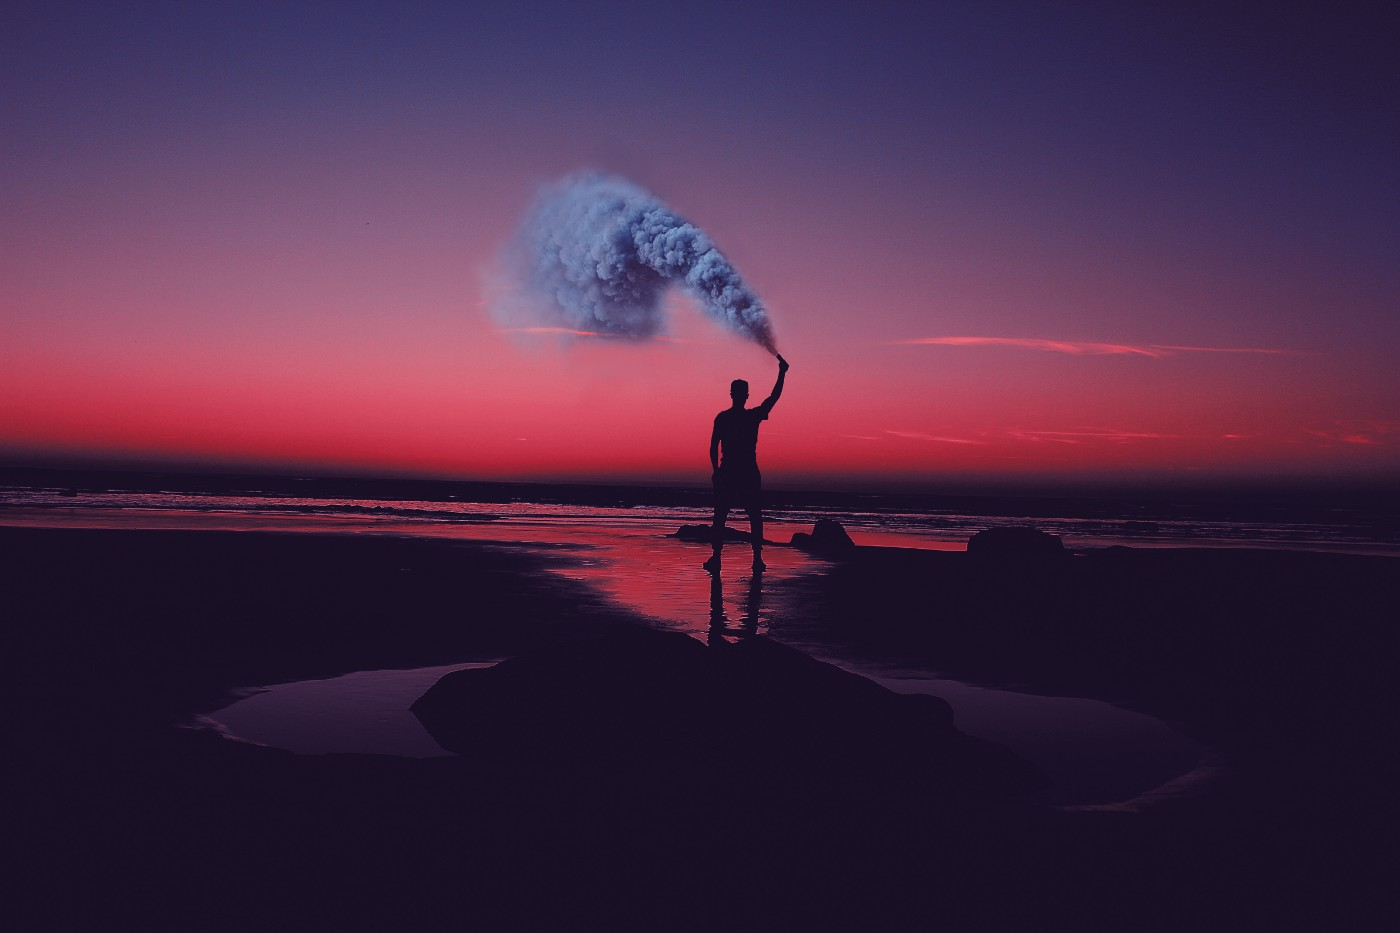 A person holding a smoke device looks toward the red sky while standing at the seashore.